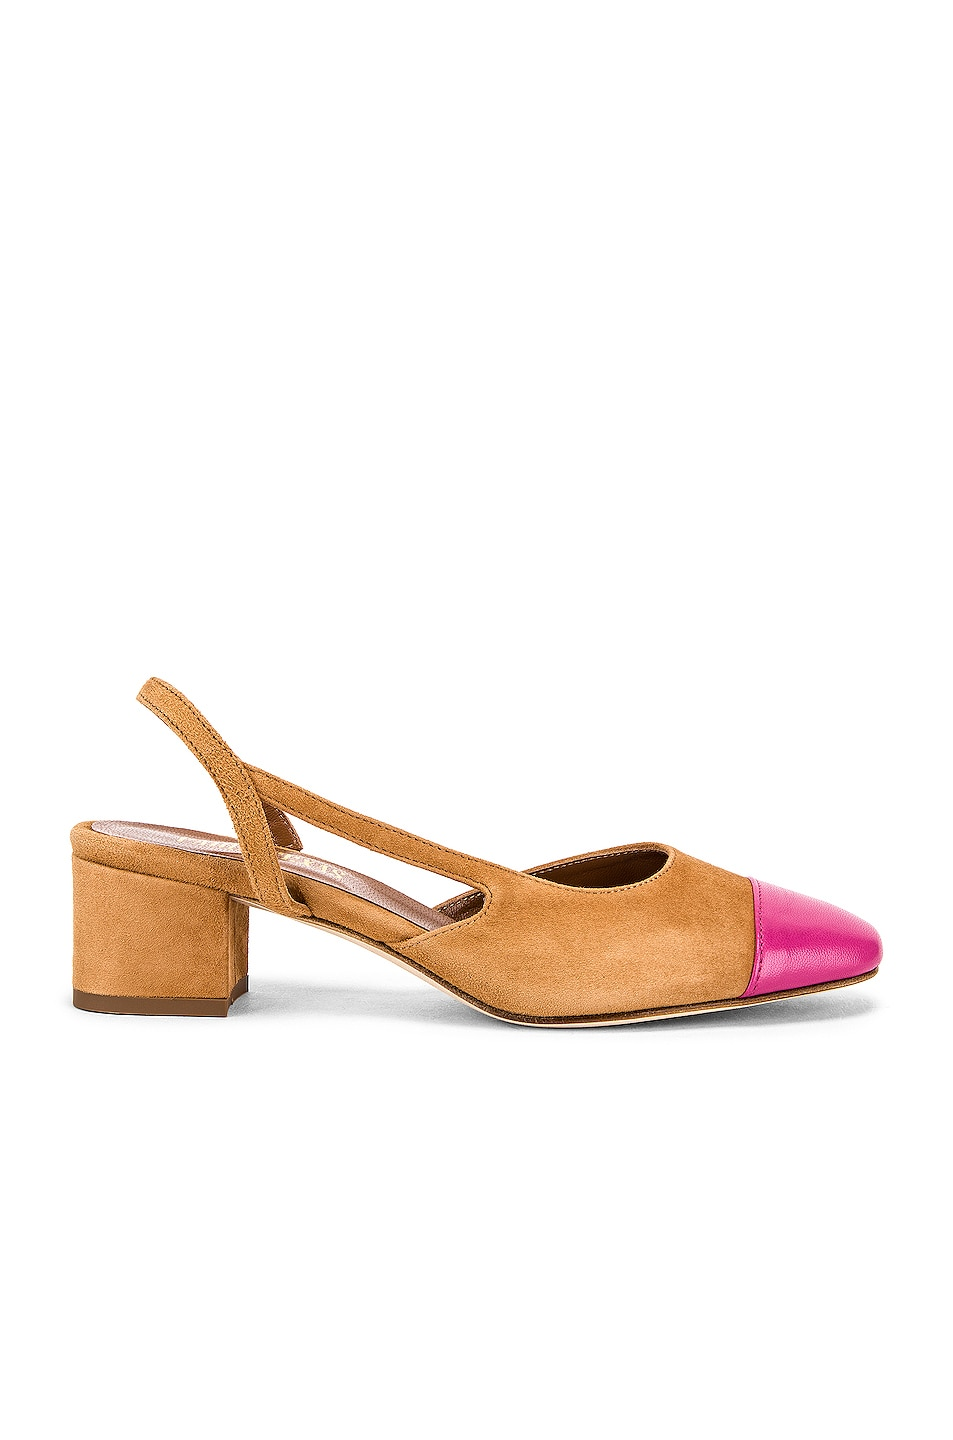 Image 1 of Paris Texas Suede Sling Back in Tan & Pink